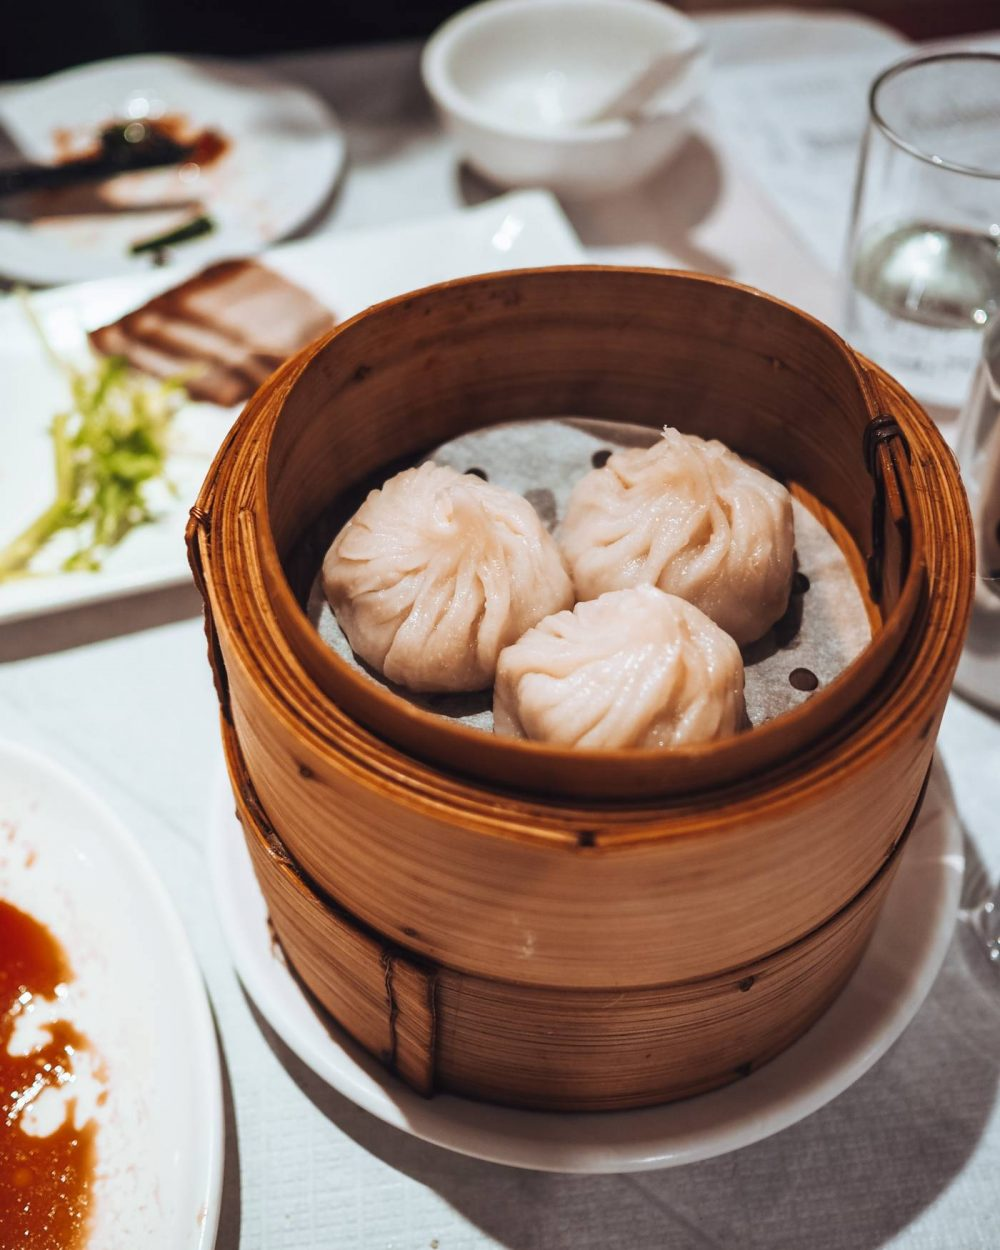 Steamed beef dumplings from Taipan Milton keynes - Eat Out to Help out in Milton Keynes.